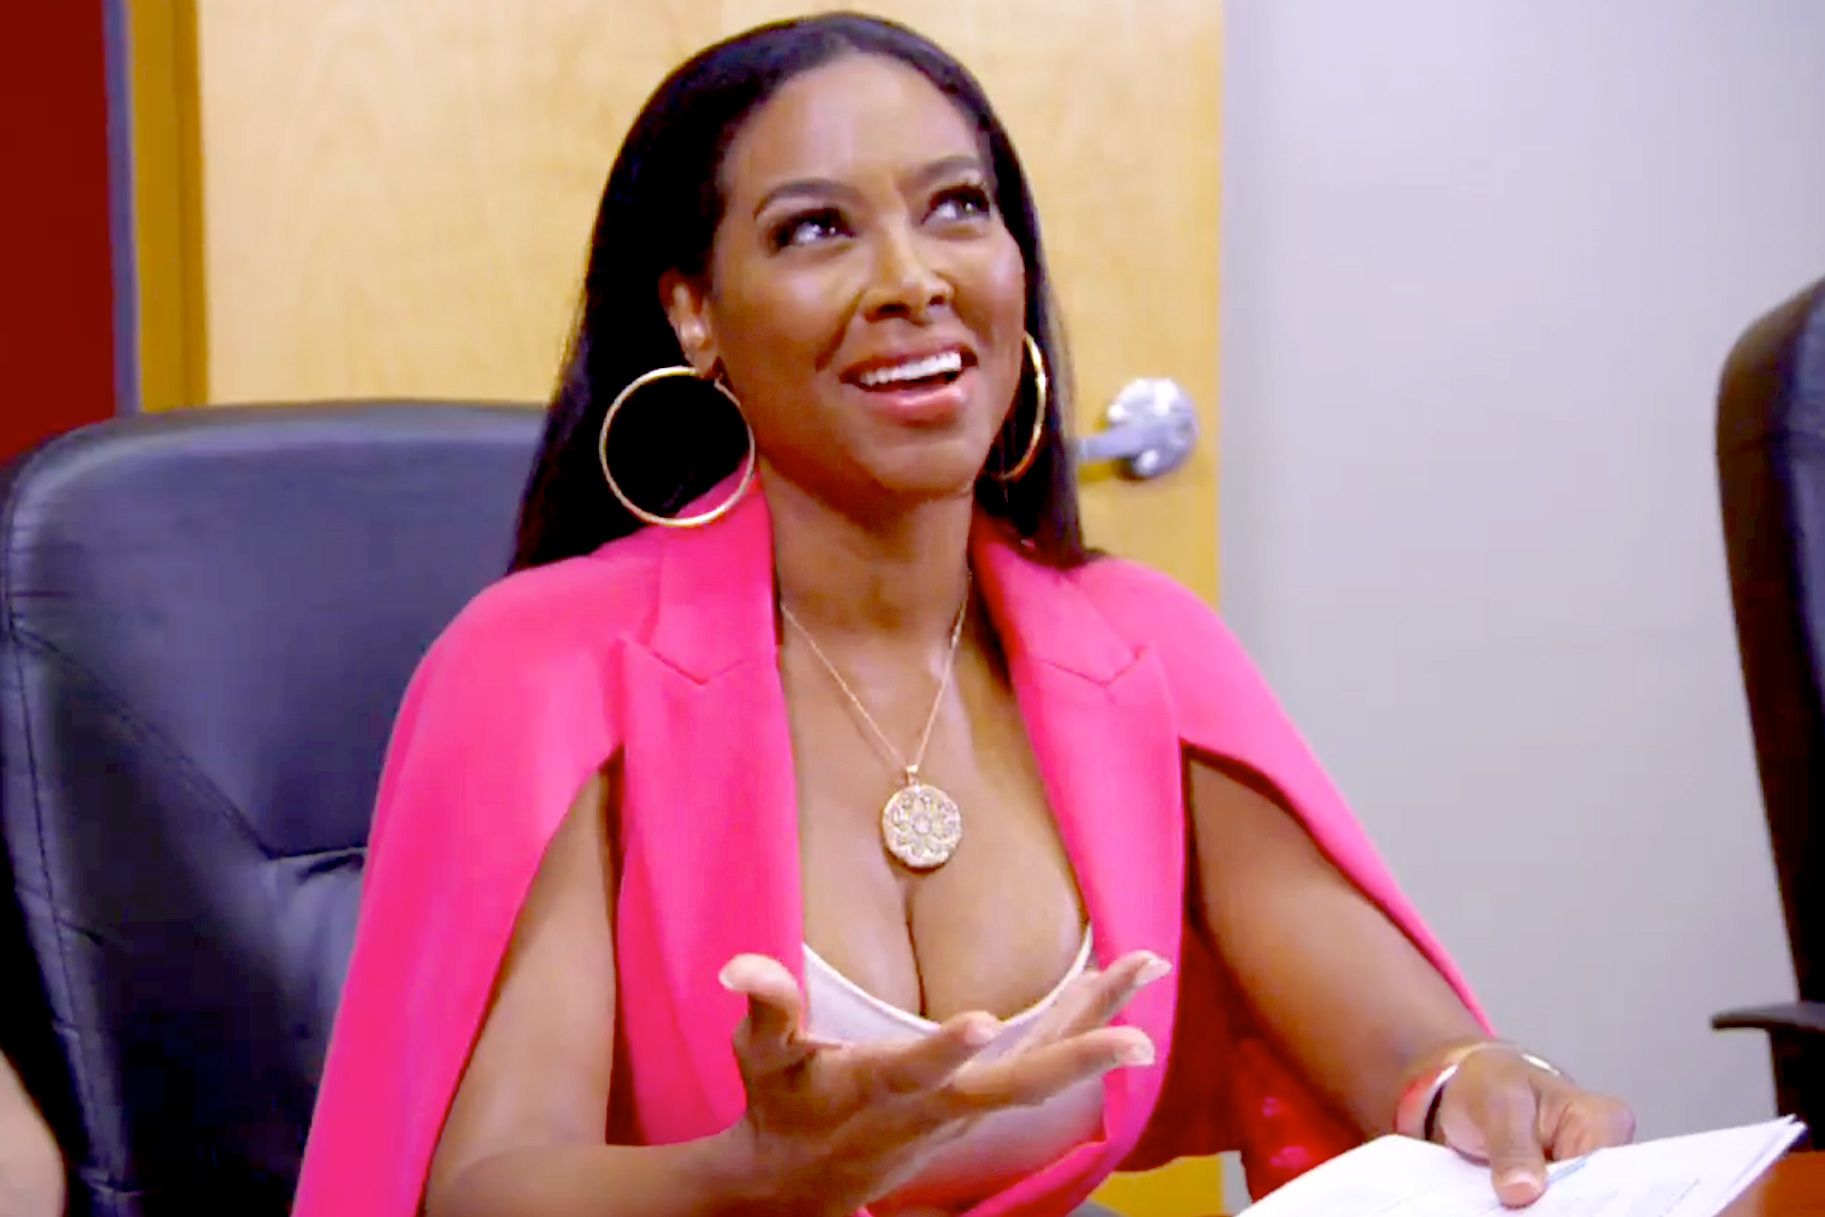 Kenya Moore's Baby Brooklyn Daly Is Snatching Her Mom's Edges In This New Video